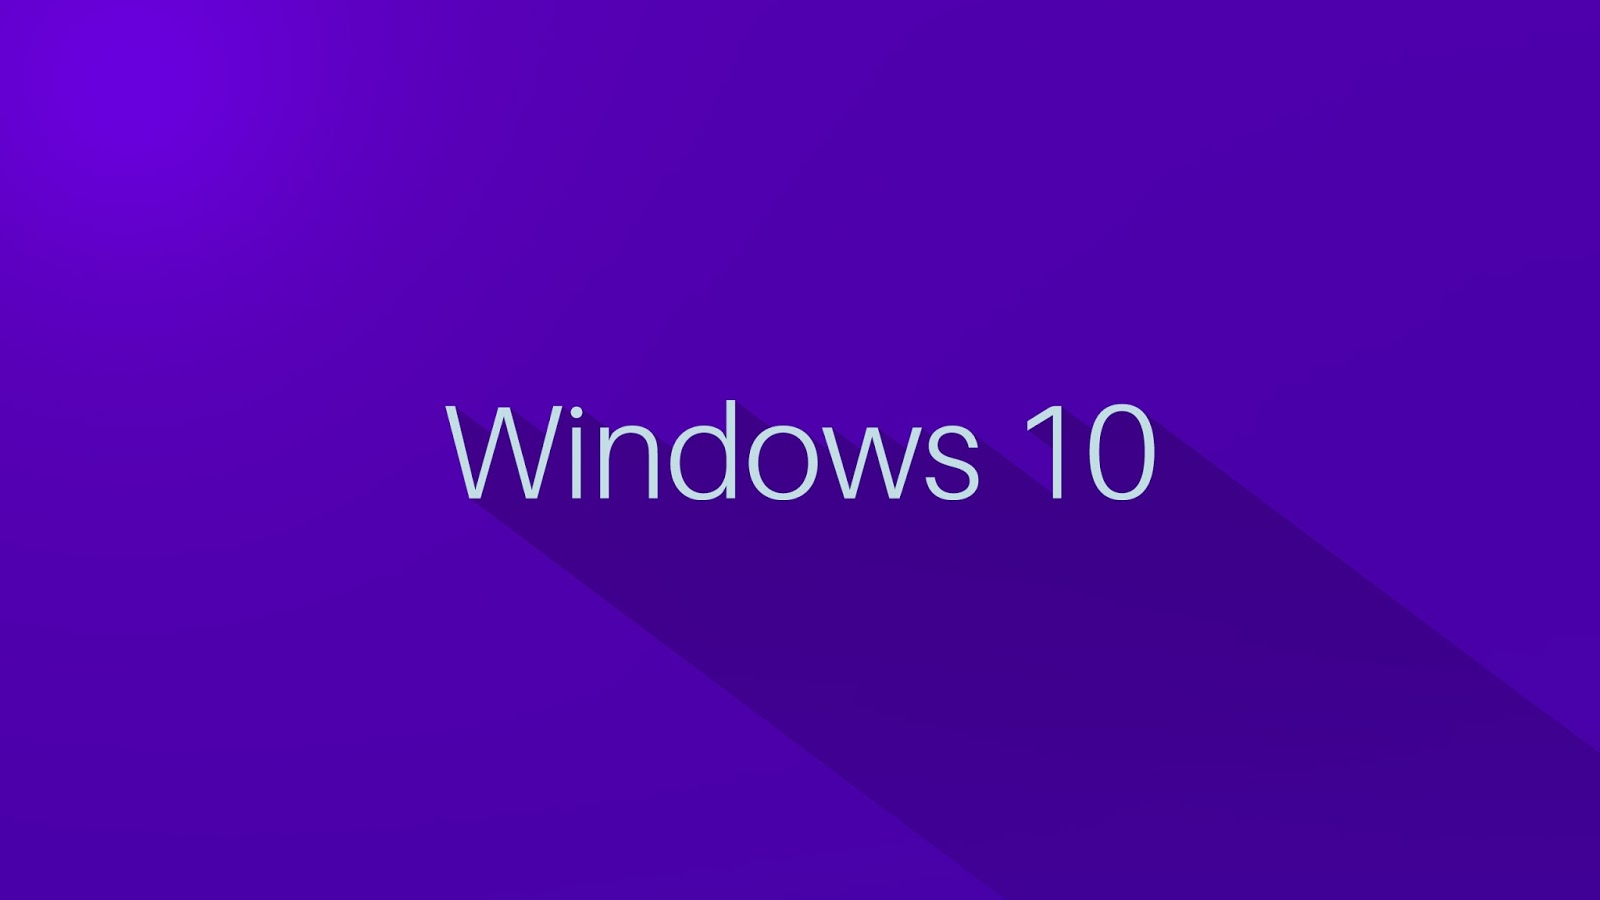 Twitter headers facebook covers wallpapers calendars for Microsoft windows 10